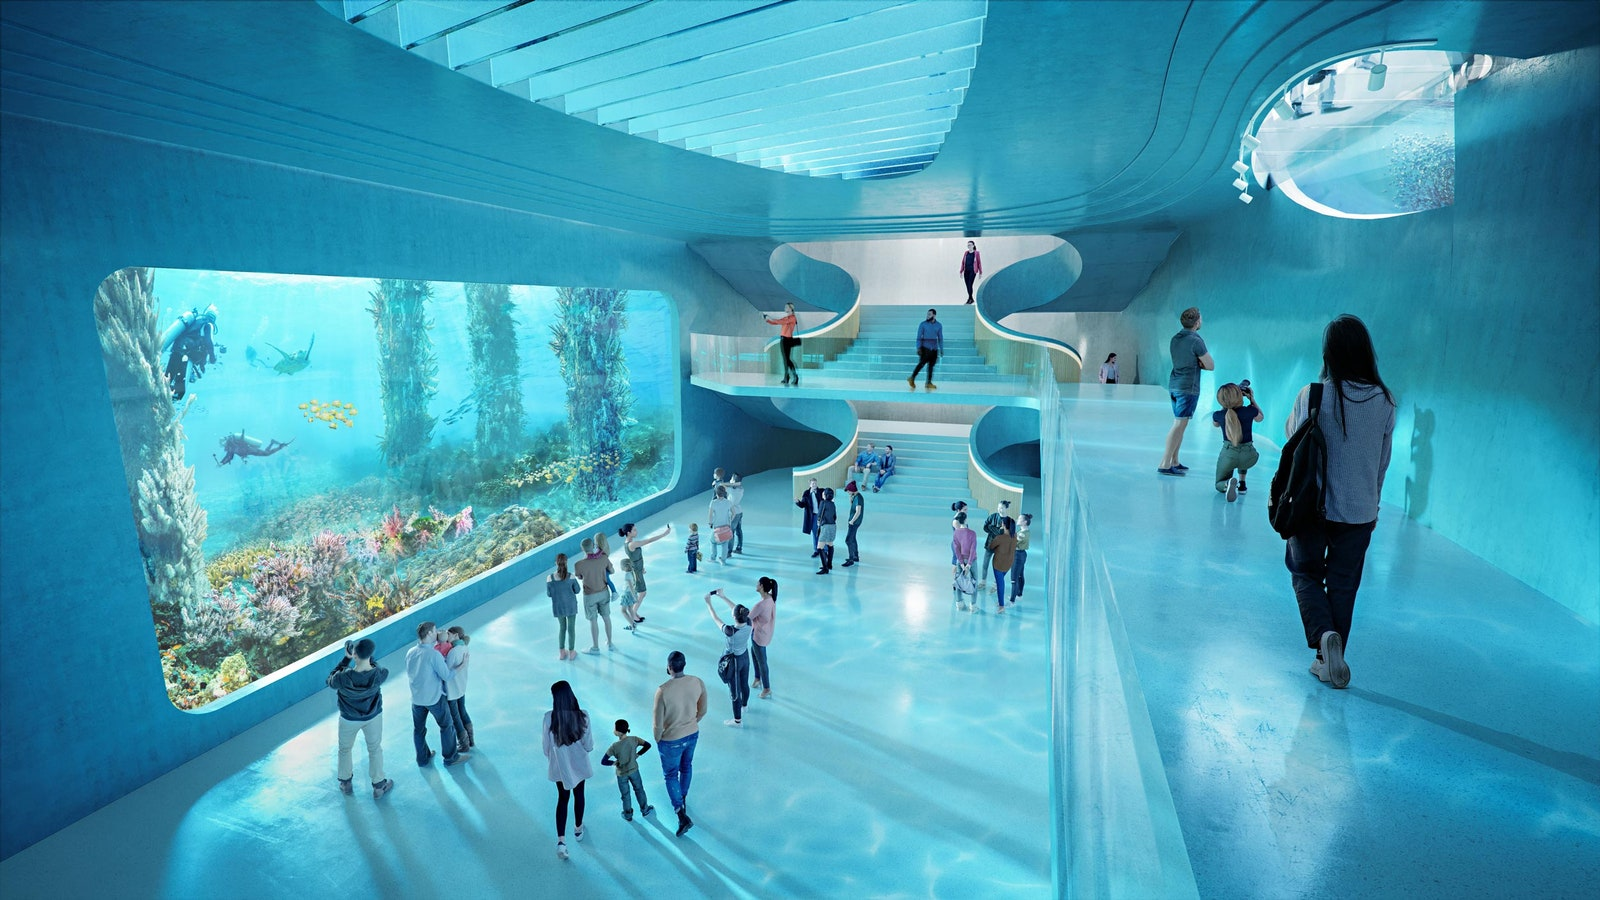 Intriue t l Underwater Ocean Discovery Center.